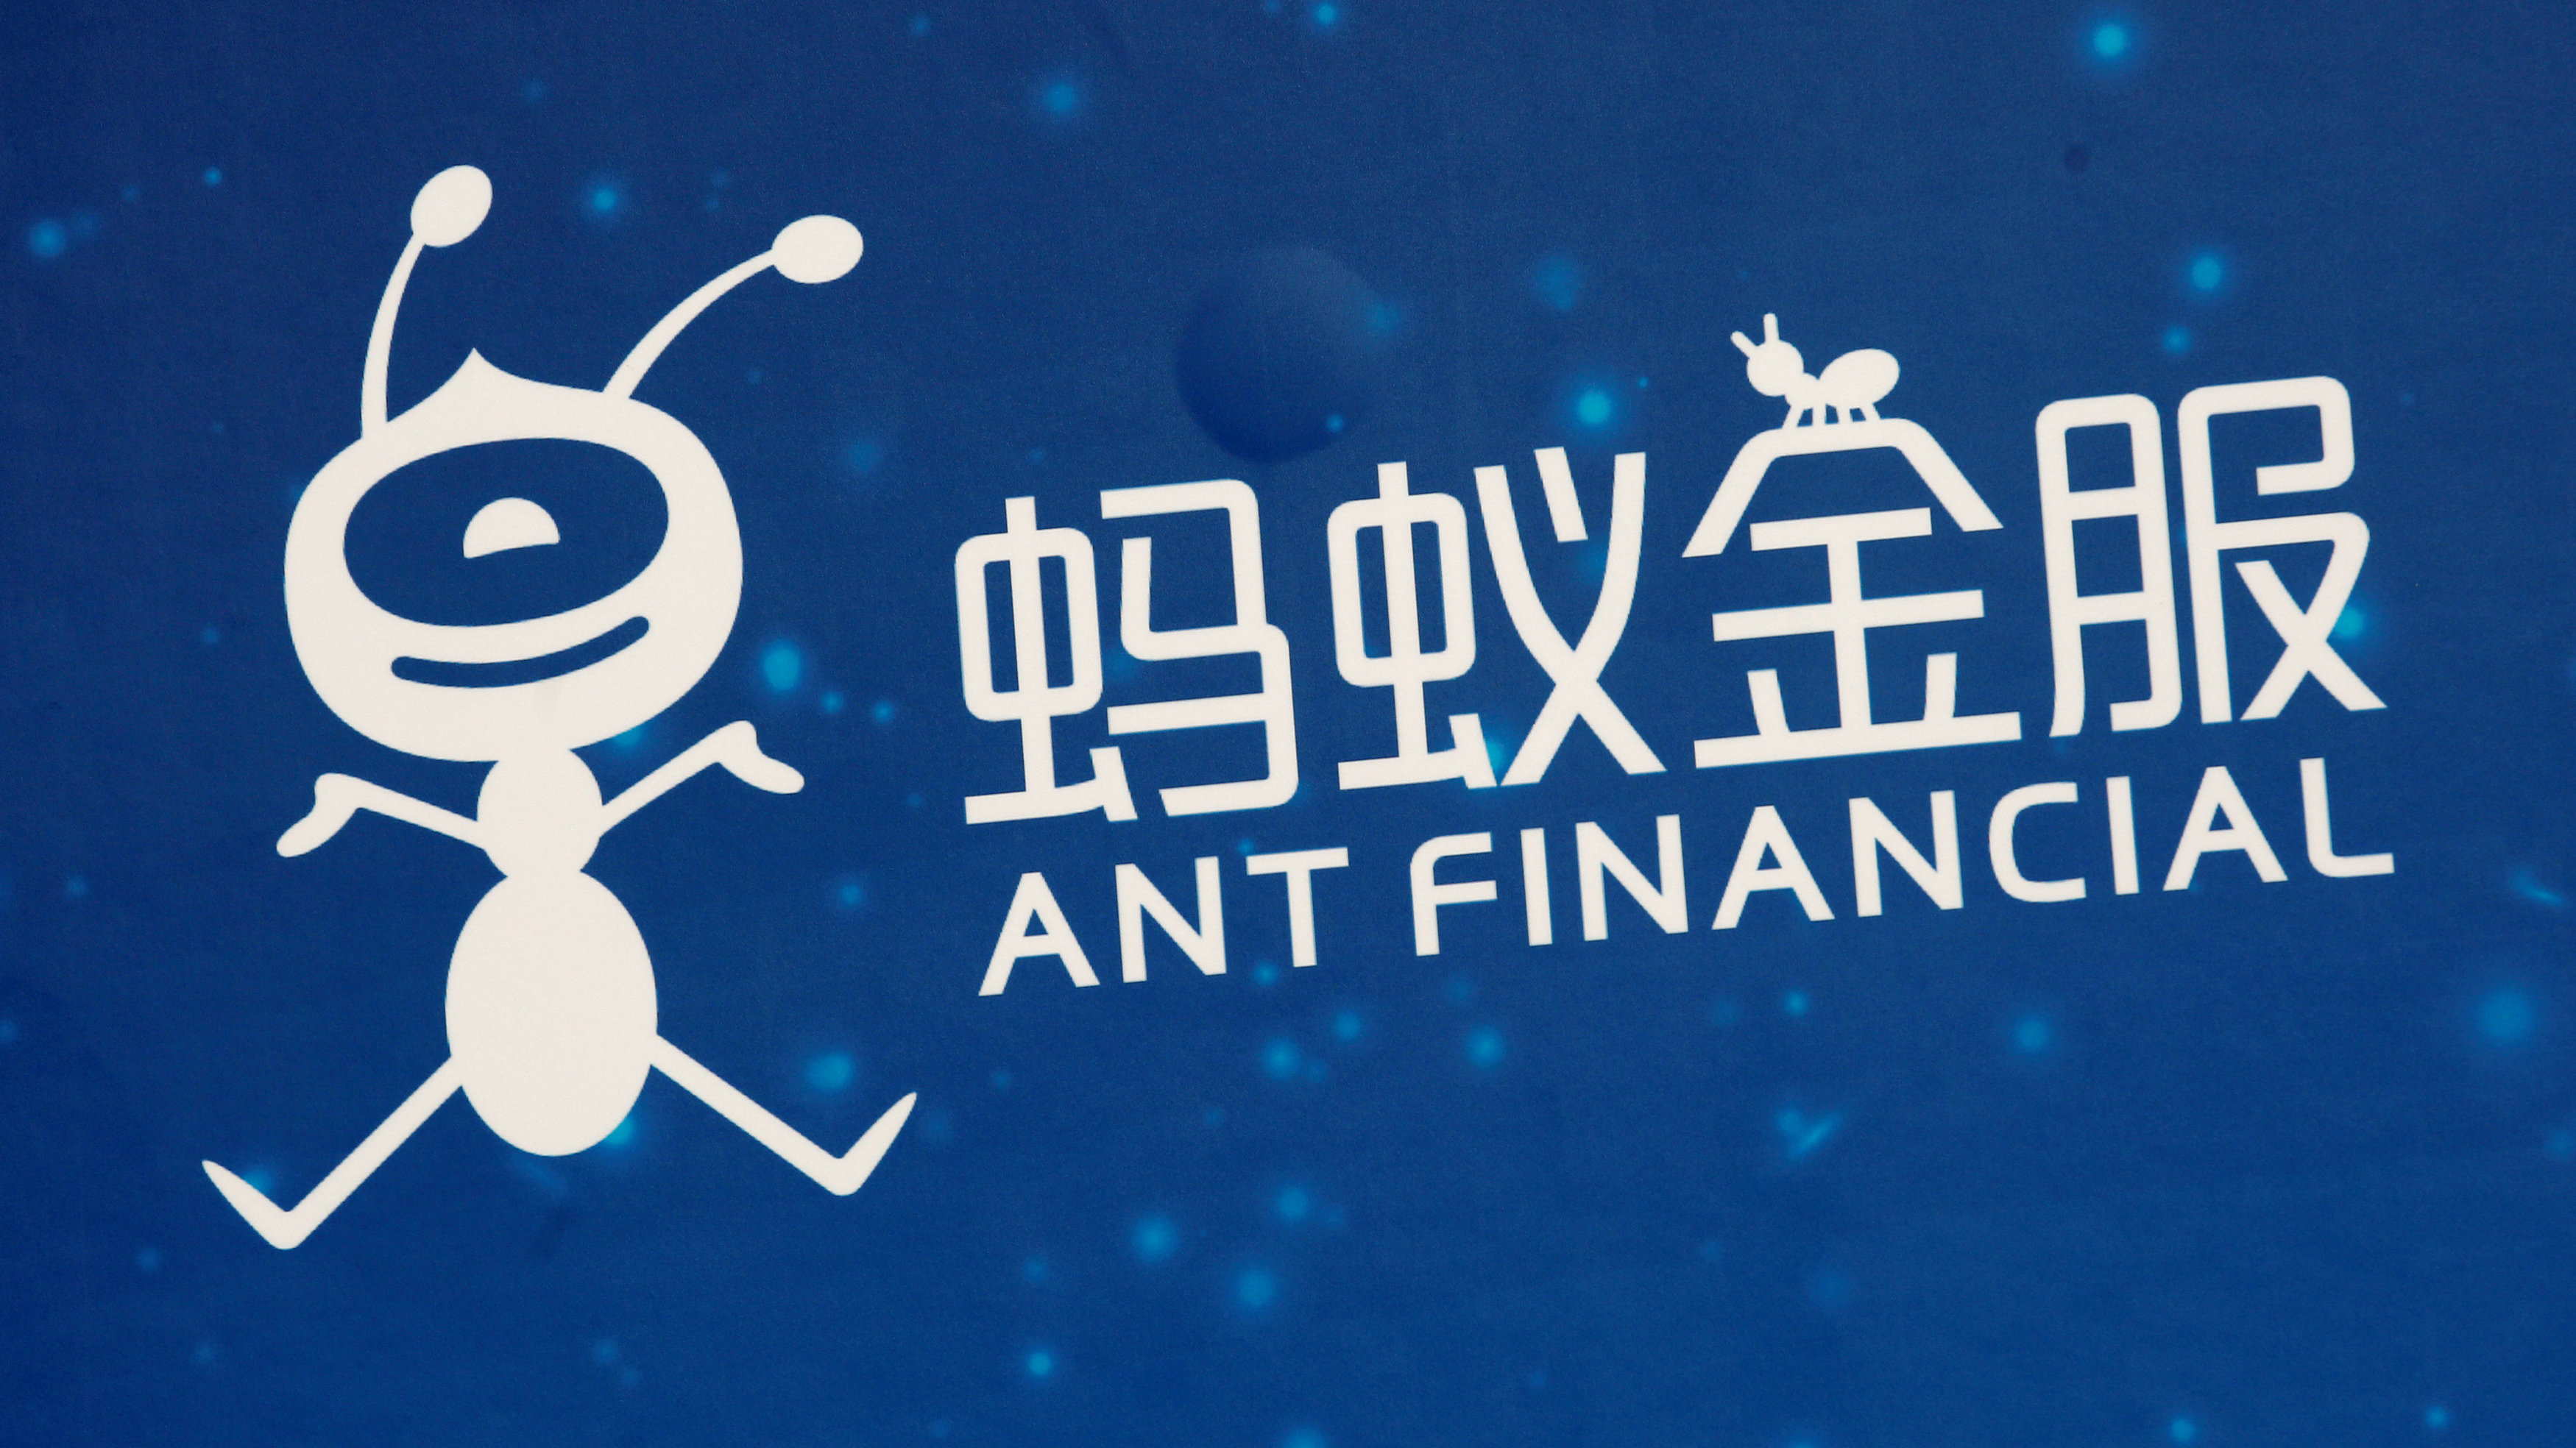 A logo of Ant Financial is displayed at the Ant Financial event in Hong Kong, China November 1, 2016.